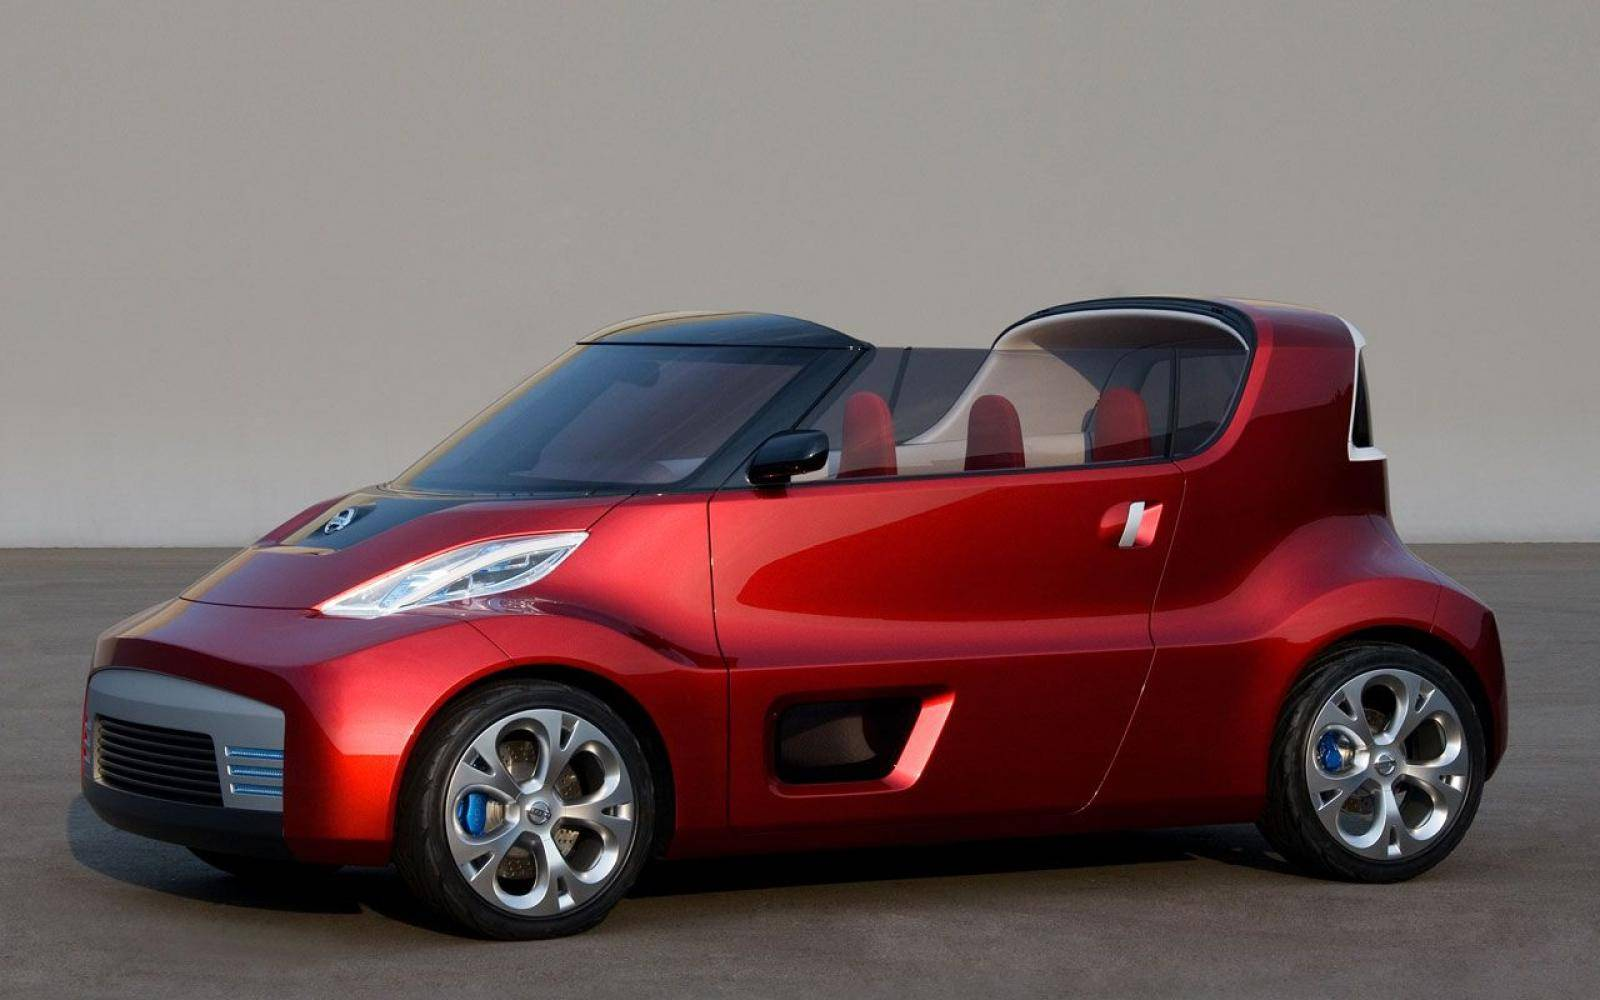 Nissan Round Box: hippe roadster